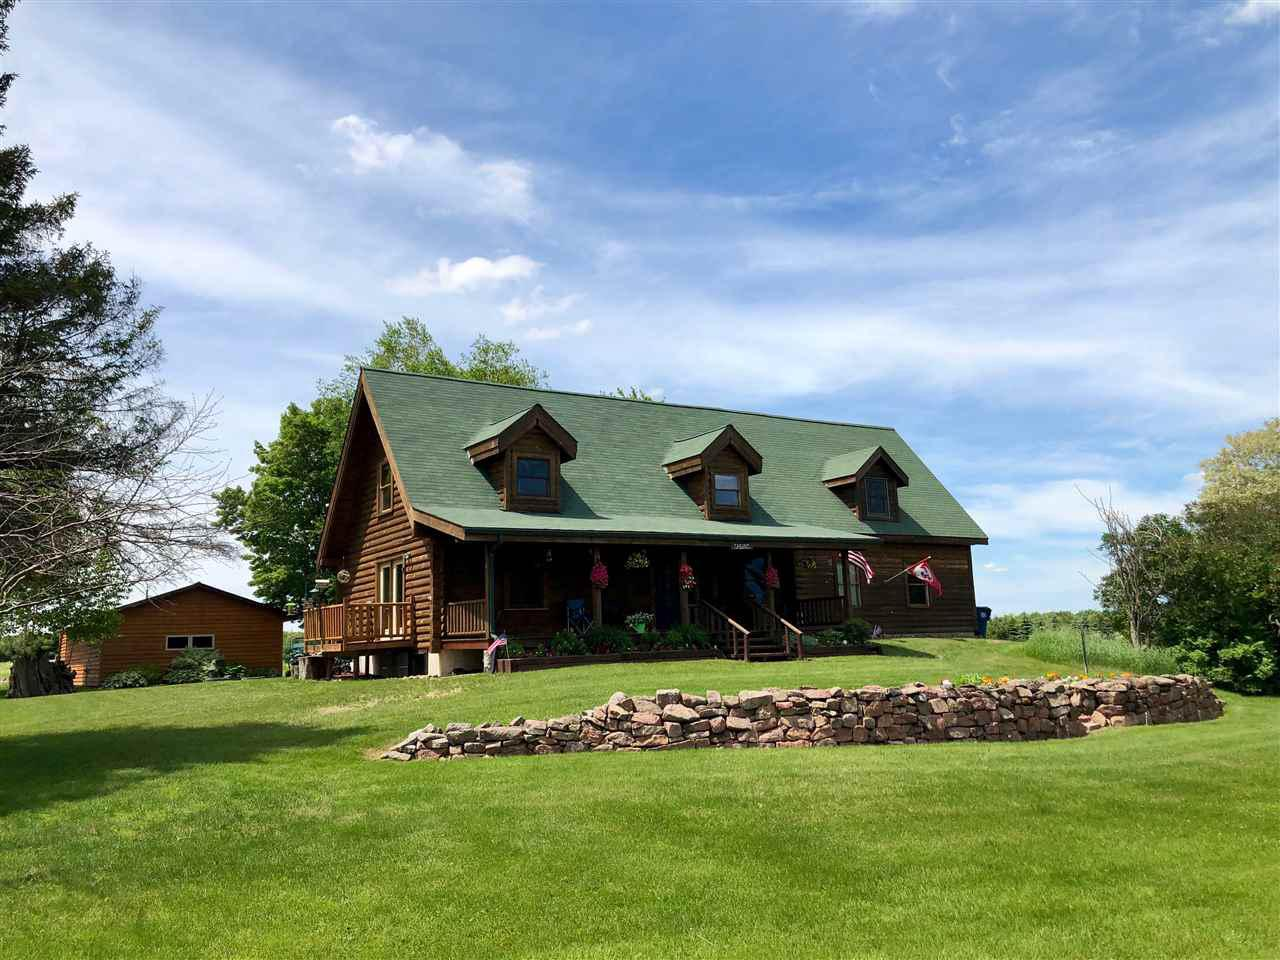 Stunning log home on 17-acres w/ abundant wildlife! Convenient location, close to town, yet private, offering a tranquil escape. Meticulously maintained including 3 separate fenced in horse paddocks, 3 stall barn w/ running water, heated tank w/ electricity, & covered hay storage & outside shelter. Stunning interior w/ loft overlooking the large vaulted living space w/ rustic cabin feel. DIRECTIONS: Hwy 52 East to Cty Rd J, E on Granite Rd, N on Trappe River Rd. OLD ADDRESS: T9322 N 97TH ST WAUSAU, WI 54403,Exceptional craftsmanship and quality of this Tennessee log home built in 2001 include the large wood vaulted ceilings in living space flowing into dining space, kitchen with custom cabinets and sliding doors to side deck, spacious bedrooms upstairs with warm cabin feel, large lower level family room good for entertaining, and a very spacious laundry room. Relax on the large front porch and enjoy the sunrises and abundant wildlife including turkeys, geese, other birds, deer, bear, coyotes, fox, and even bob cats! Additional values include fresh log home stain (2017), log home roof (2017), attached, insulated 2-car garage (2007), detached, insulated garage (2007), heated/ insulated workshop (22?x14?), newer cedar sided and painted horse barn (2017), insulated horse barn (2007) w/ water line 5? deep, high efficiency furnace (2007 w/ maintenance completed in 2017), A/C (2007 w/ maintenance completed in 2019), new septic pump (2016), new well pump (2007 -  depth 101?), and newer water heater (2016). Additionally, the old barn foundation could be used for a swimming pool / hot tub and includes a 220 electrical outlet, plus the old silo set up for fire pit, great for entertaining!